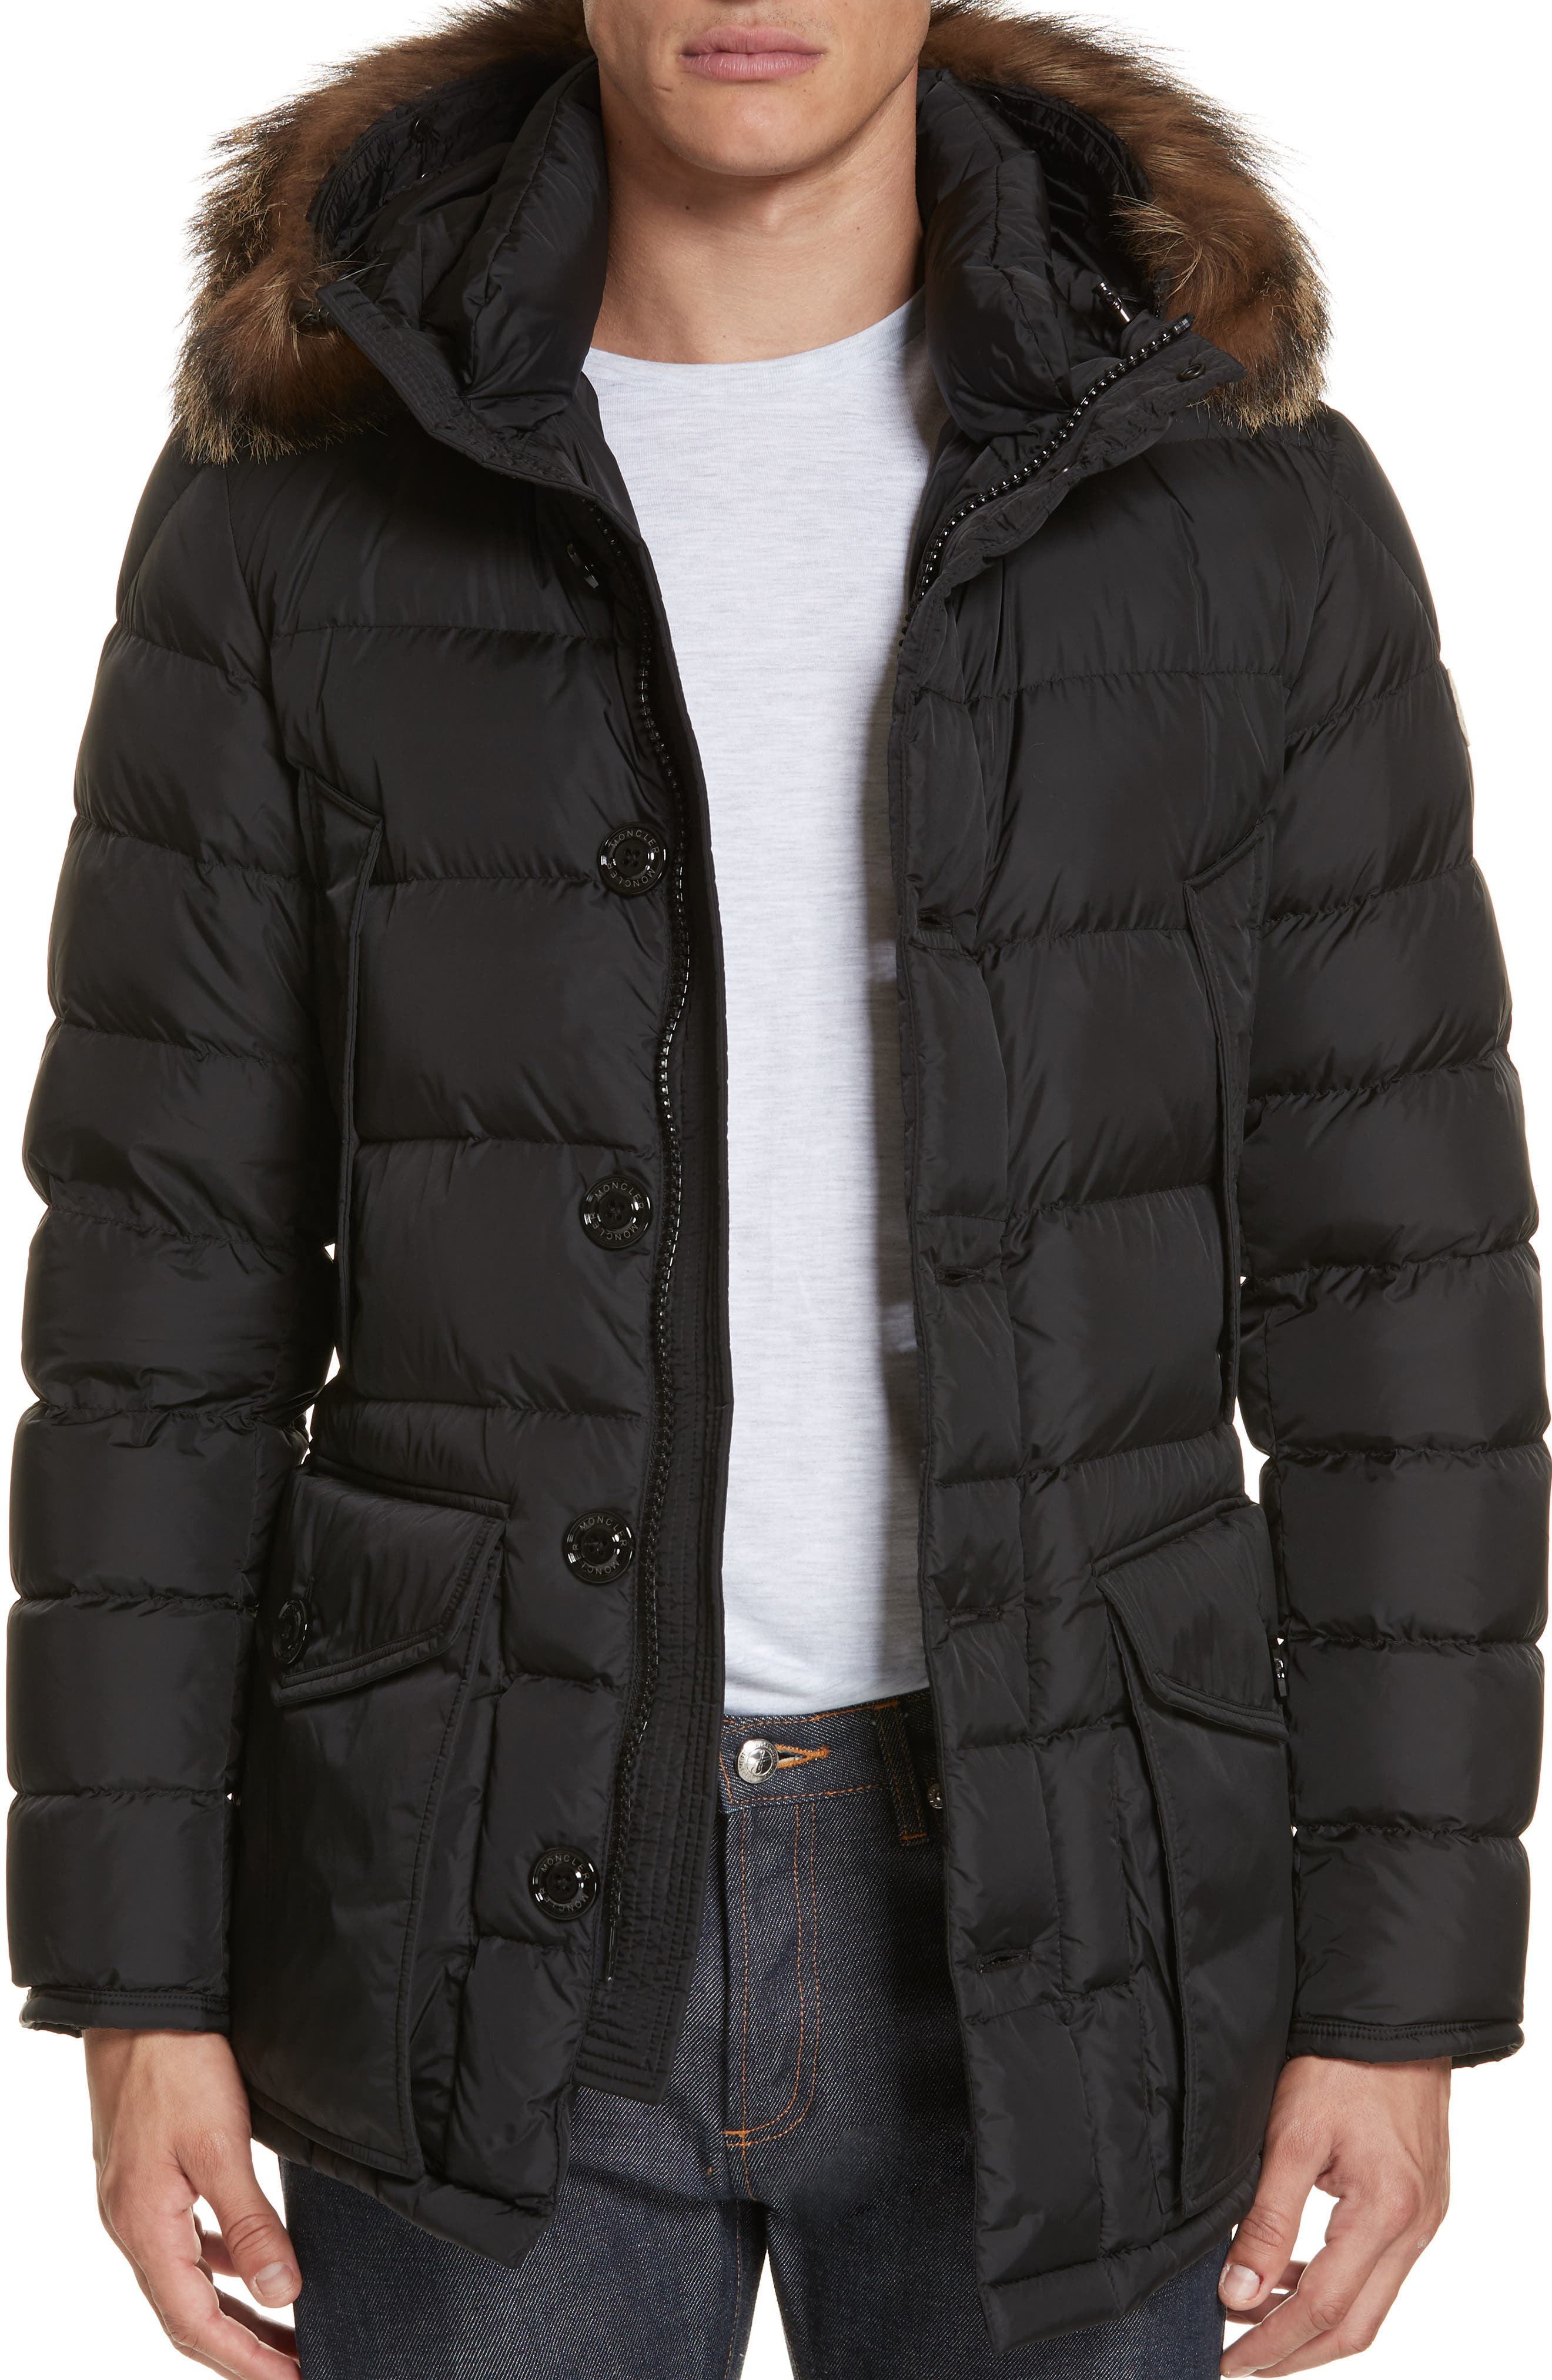 Cluny Giubbotto Down Parka with Genuine Coyote Fur Trim,                             Alternate thumbnail 4, color,                             001